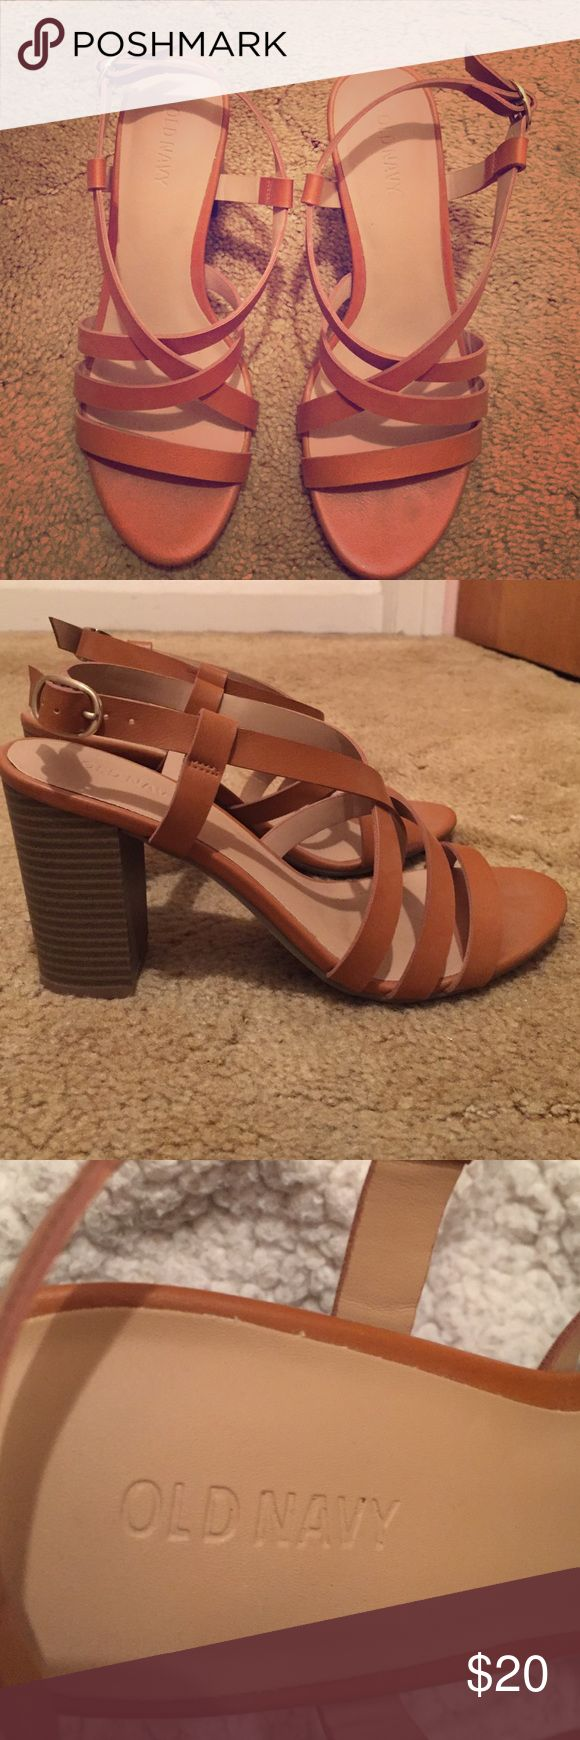 Tan strappy heels Never worn Old Navy heeled sandals! Size 8 Old Navy Shoes Heels